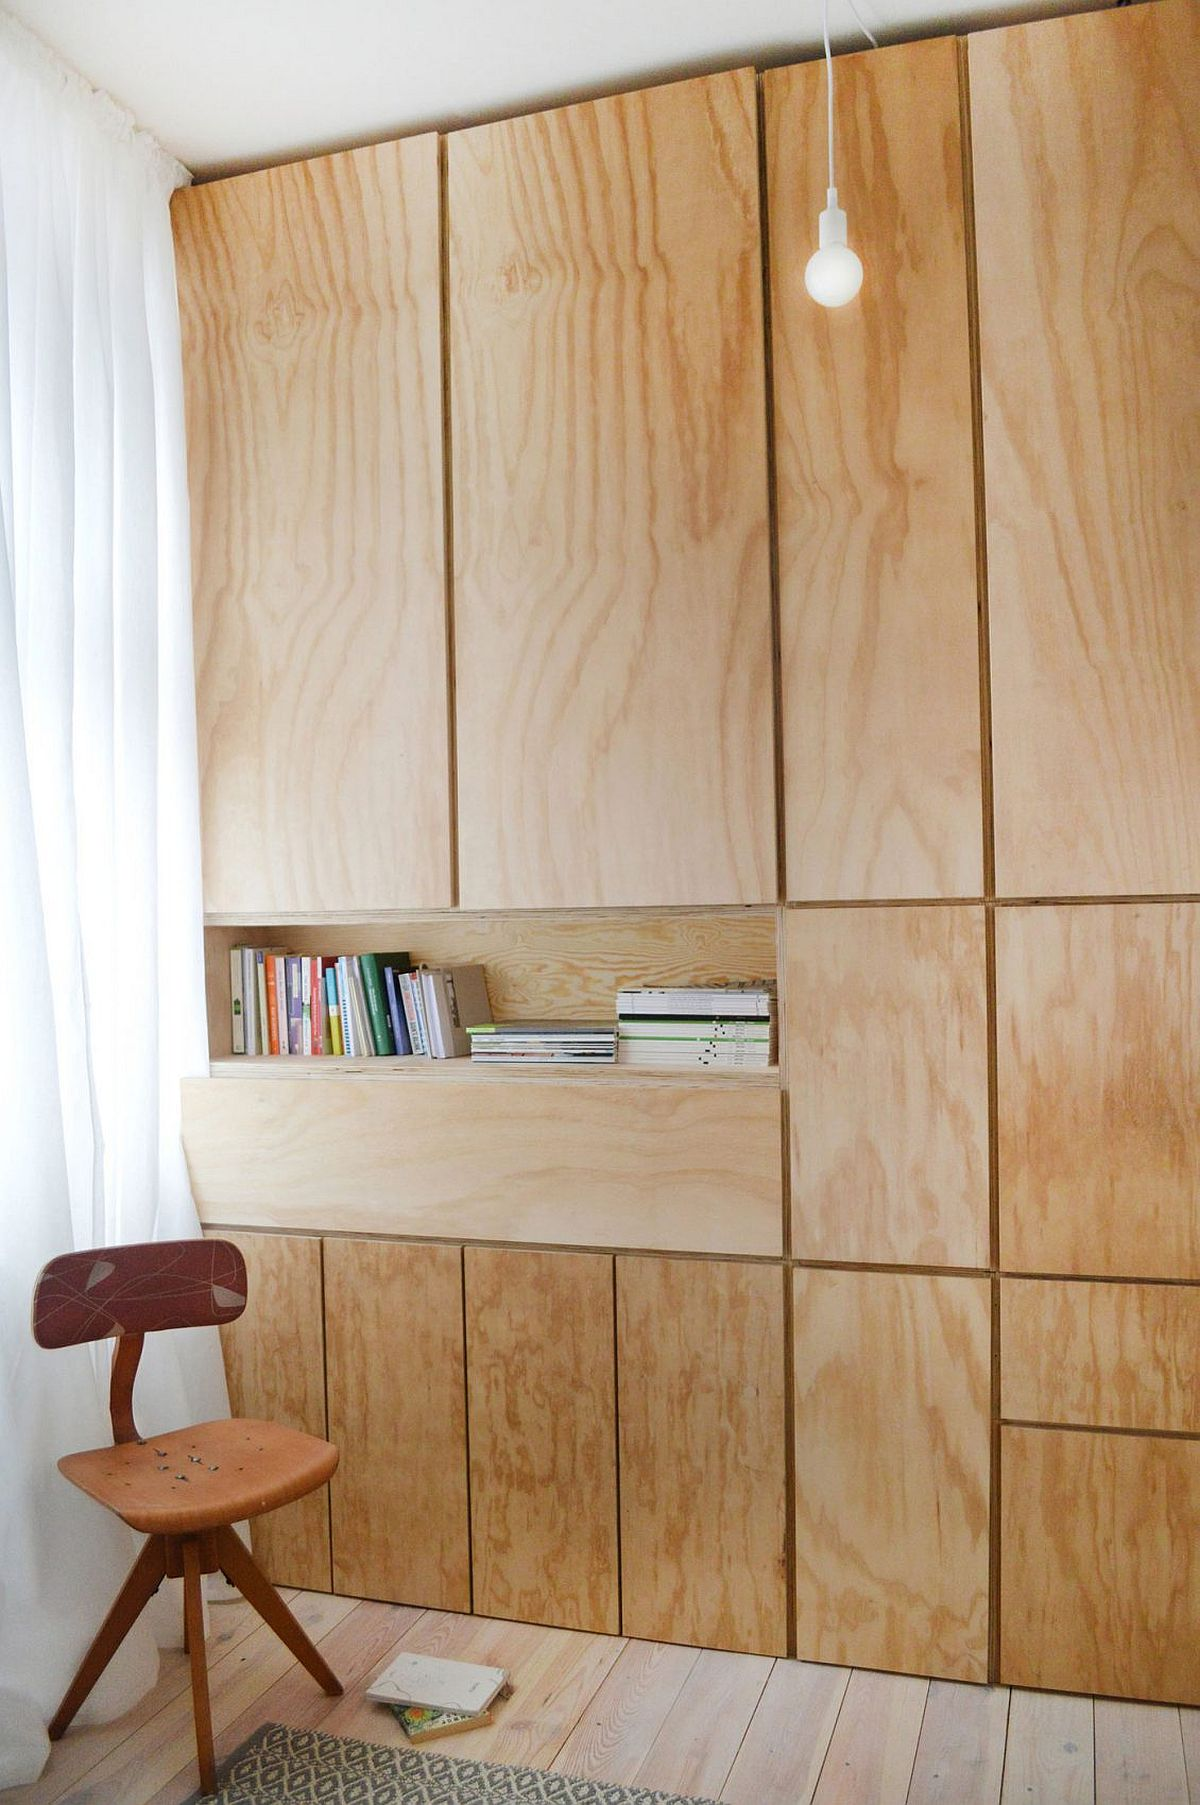 Drop down workdesk of the home office saves space